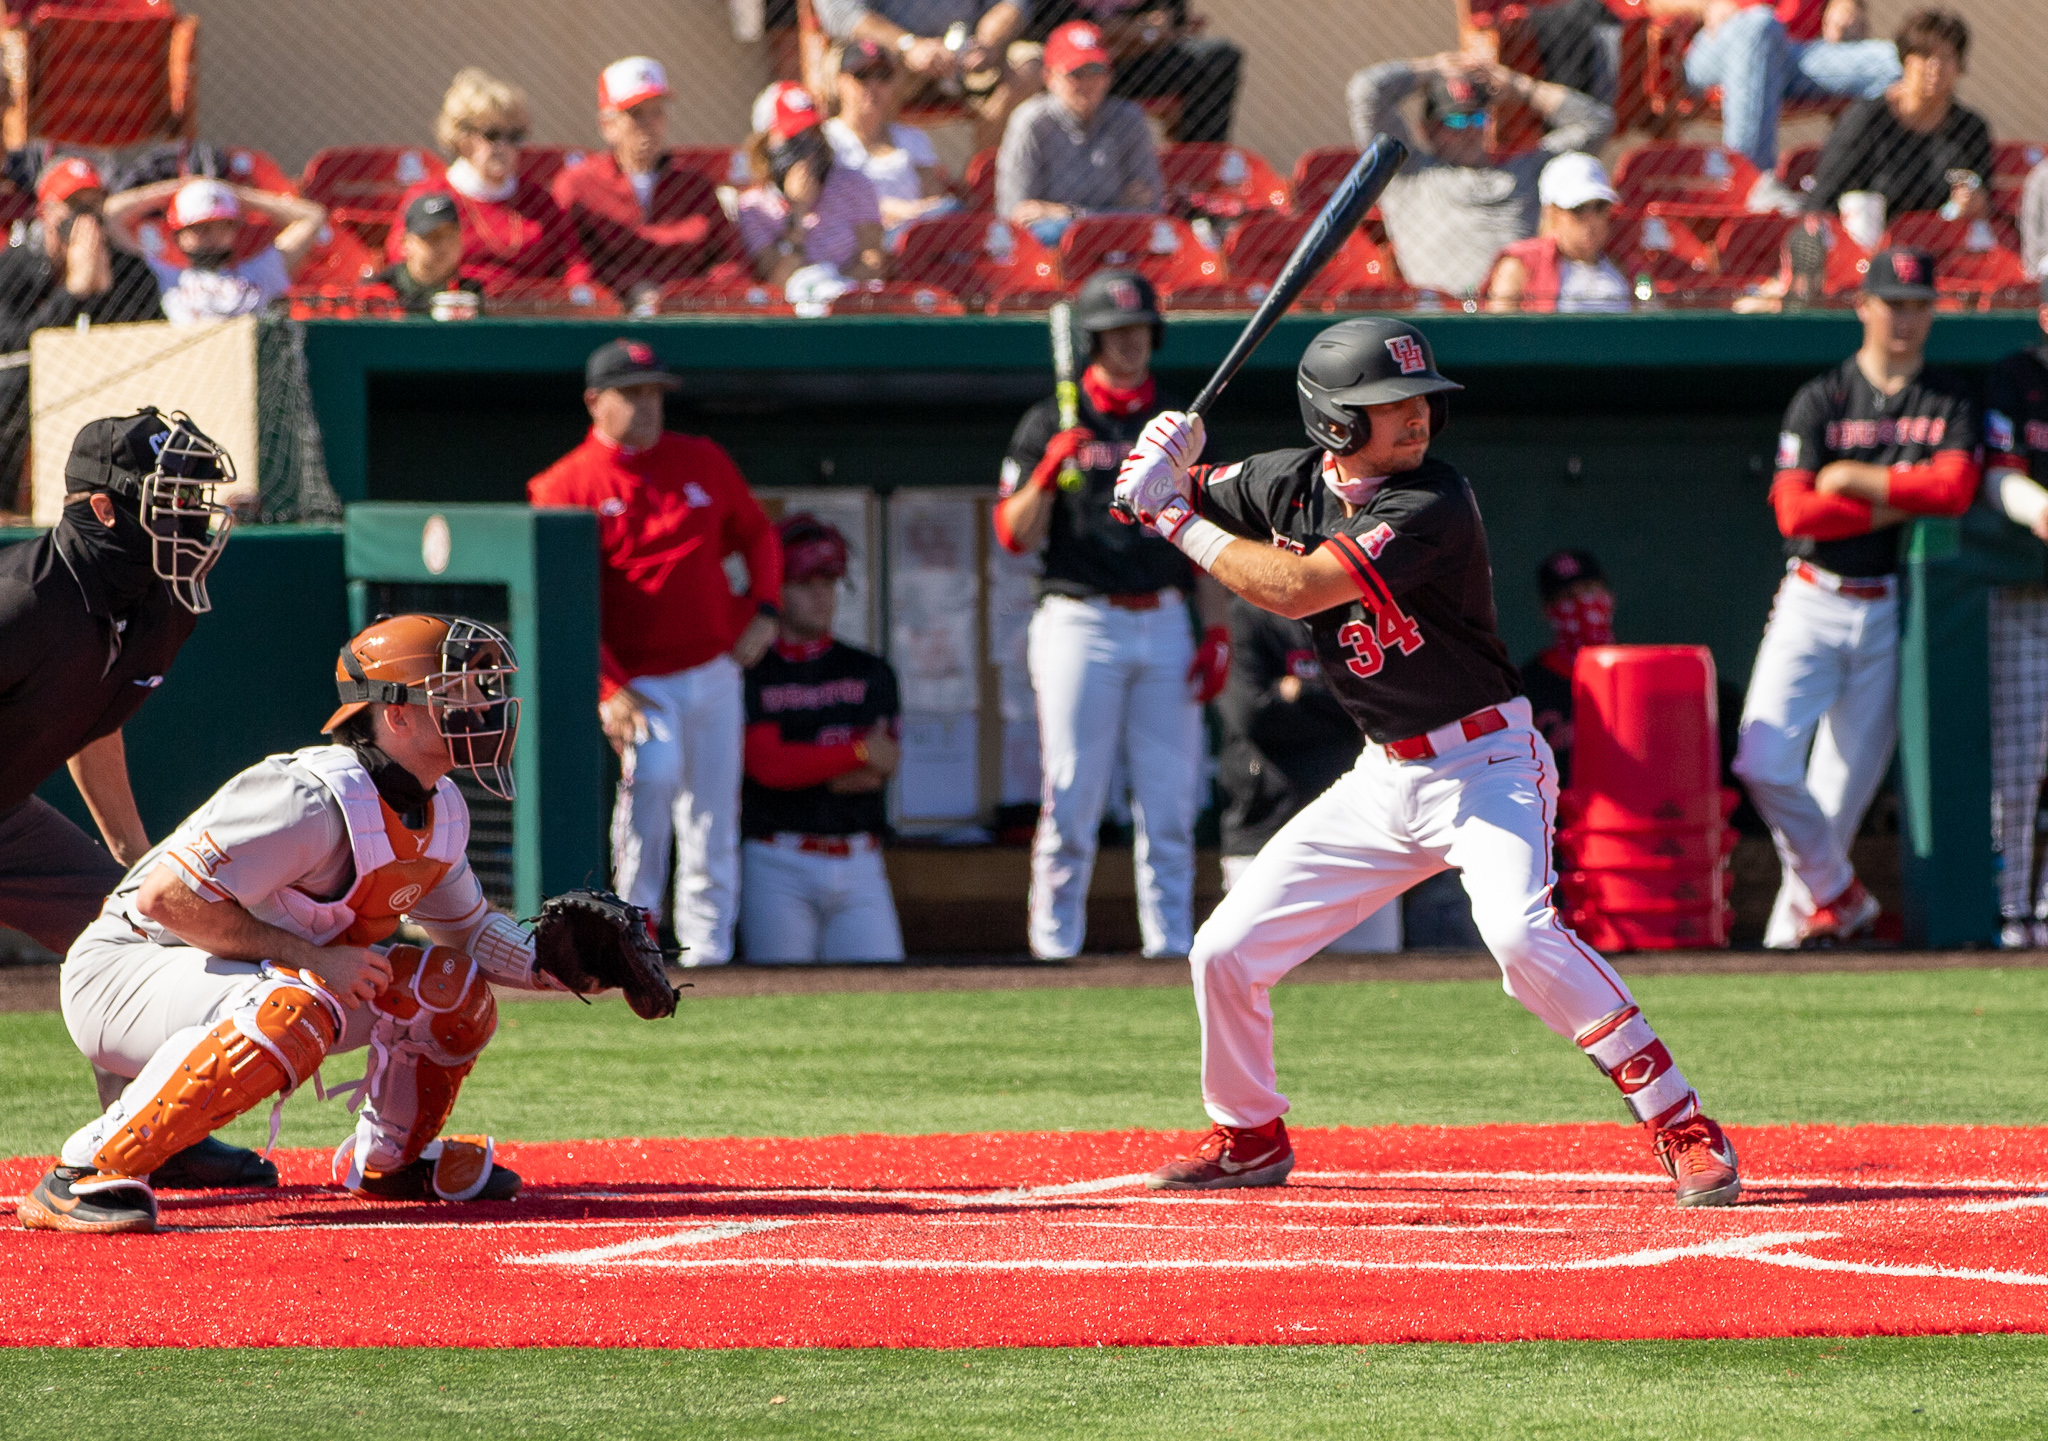 Junior catcher Kyle Lovelace was the hero for UH baseball, delivering a walk-off bunt in the Cougars victory Sunday afternoon | Andy Yanez/The Cougar